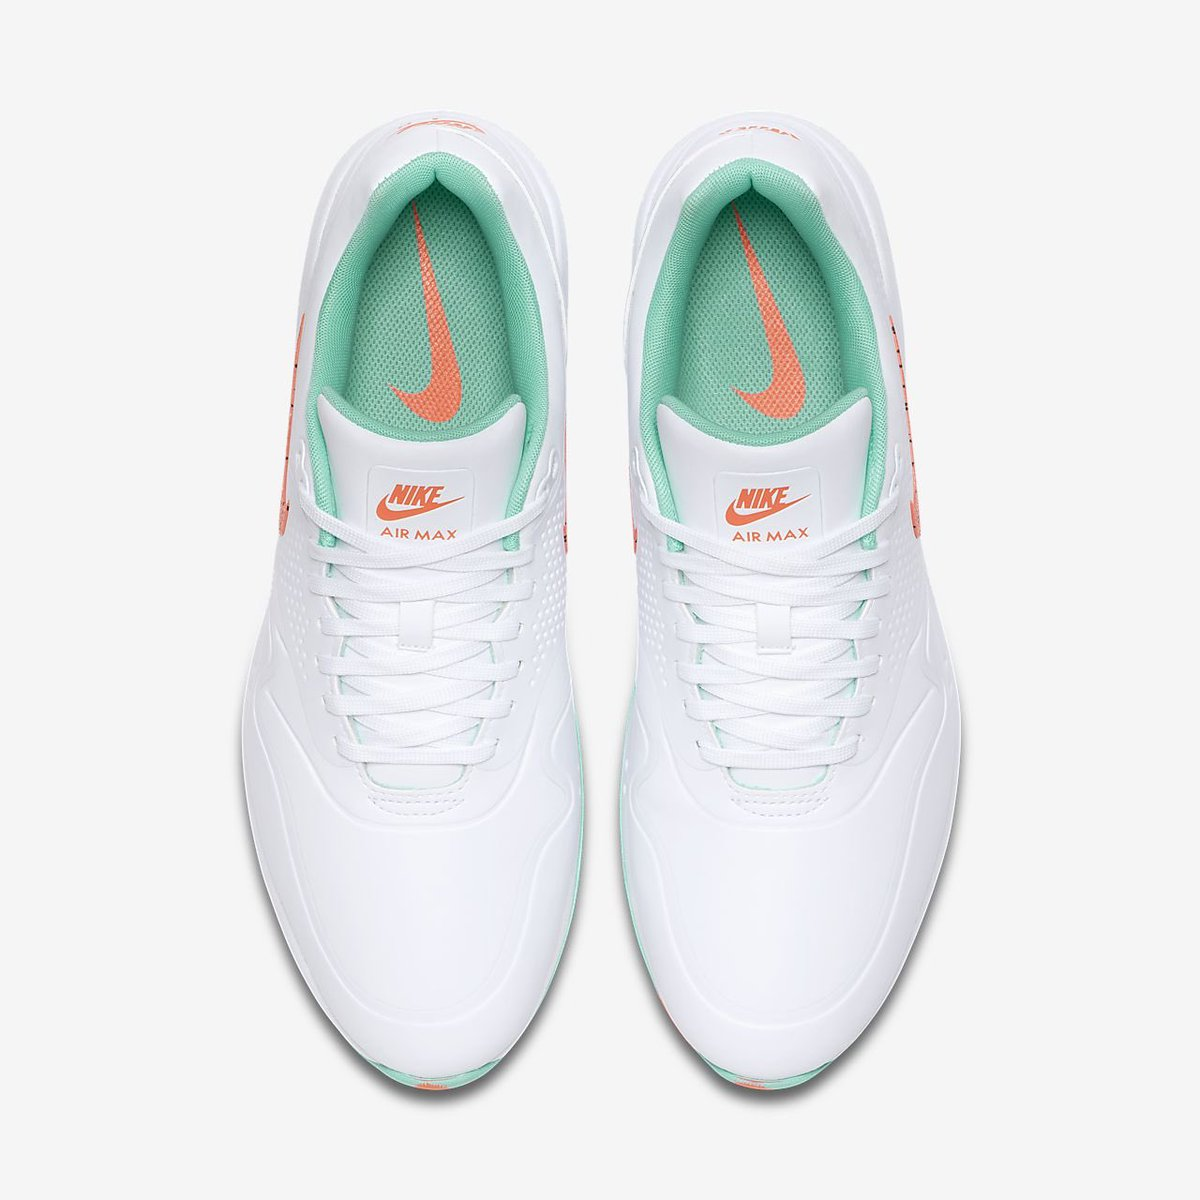 Snkr Twitr On Twitter Nike Air Max 1 Golf White Hot Punch Available Via Nikestore Https T Co Ld3qfrwf7l Ad